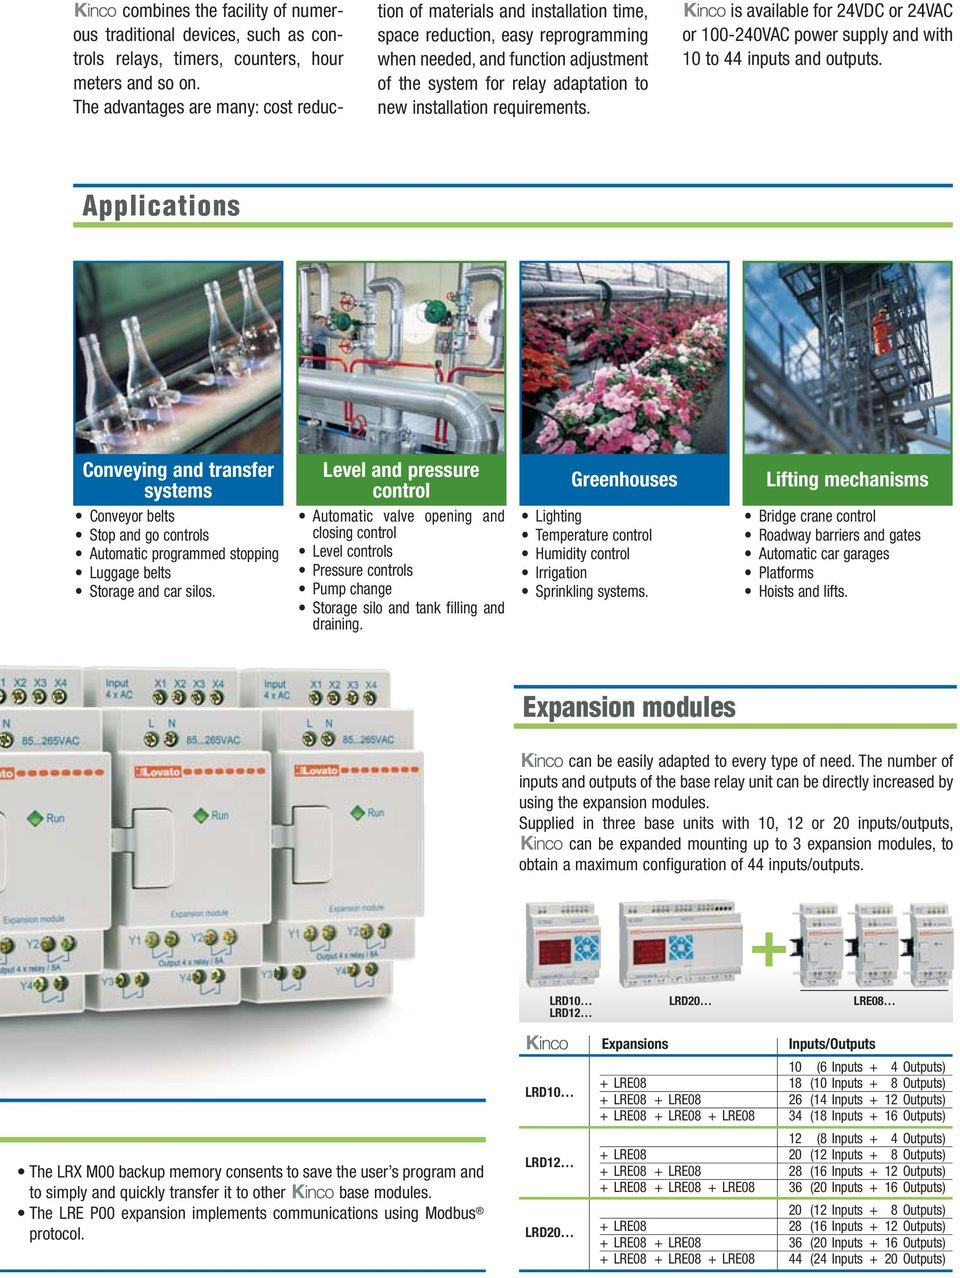 installation requirements. is available for 24VDC or 24VAC or 100-240VAC power supply and with 10 to 44 inputs and outputs.